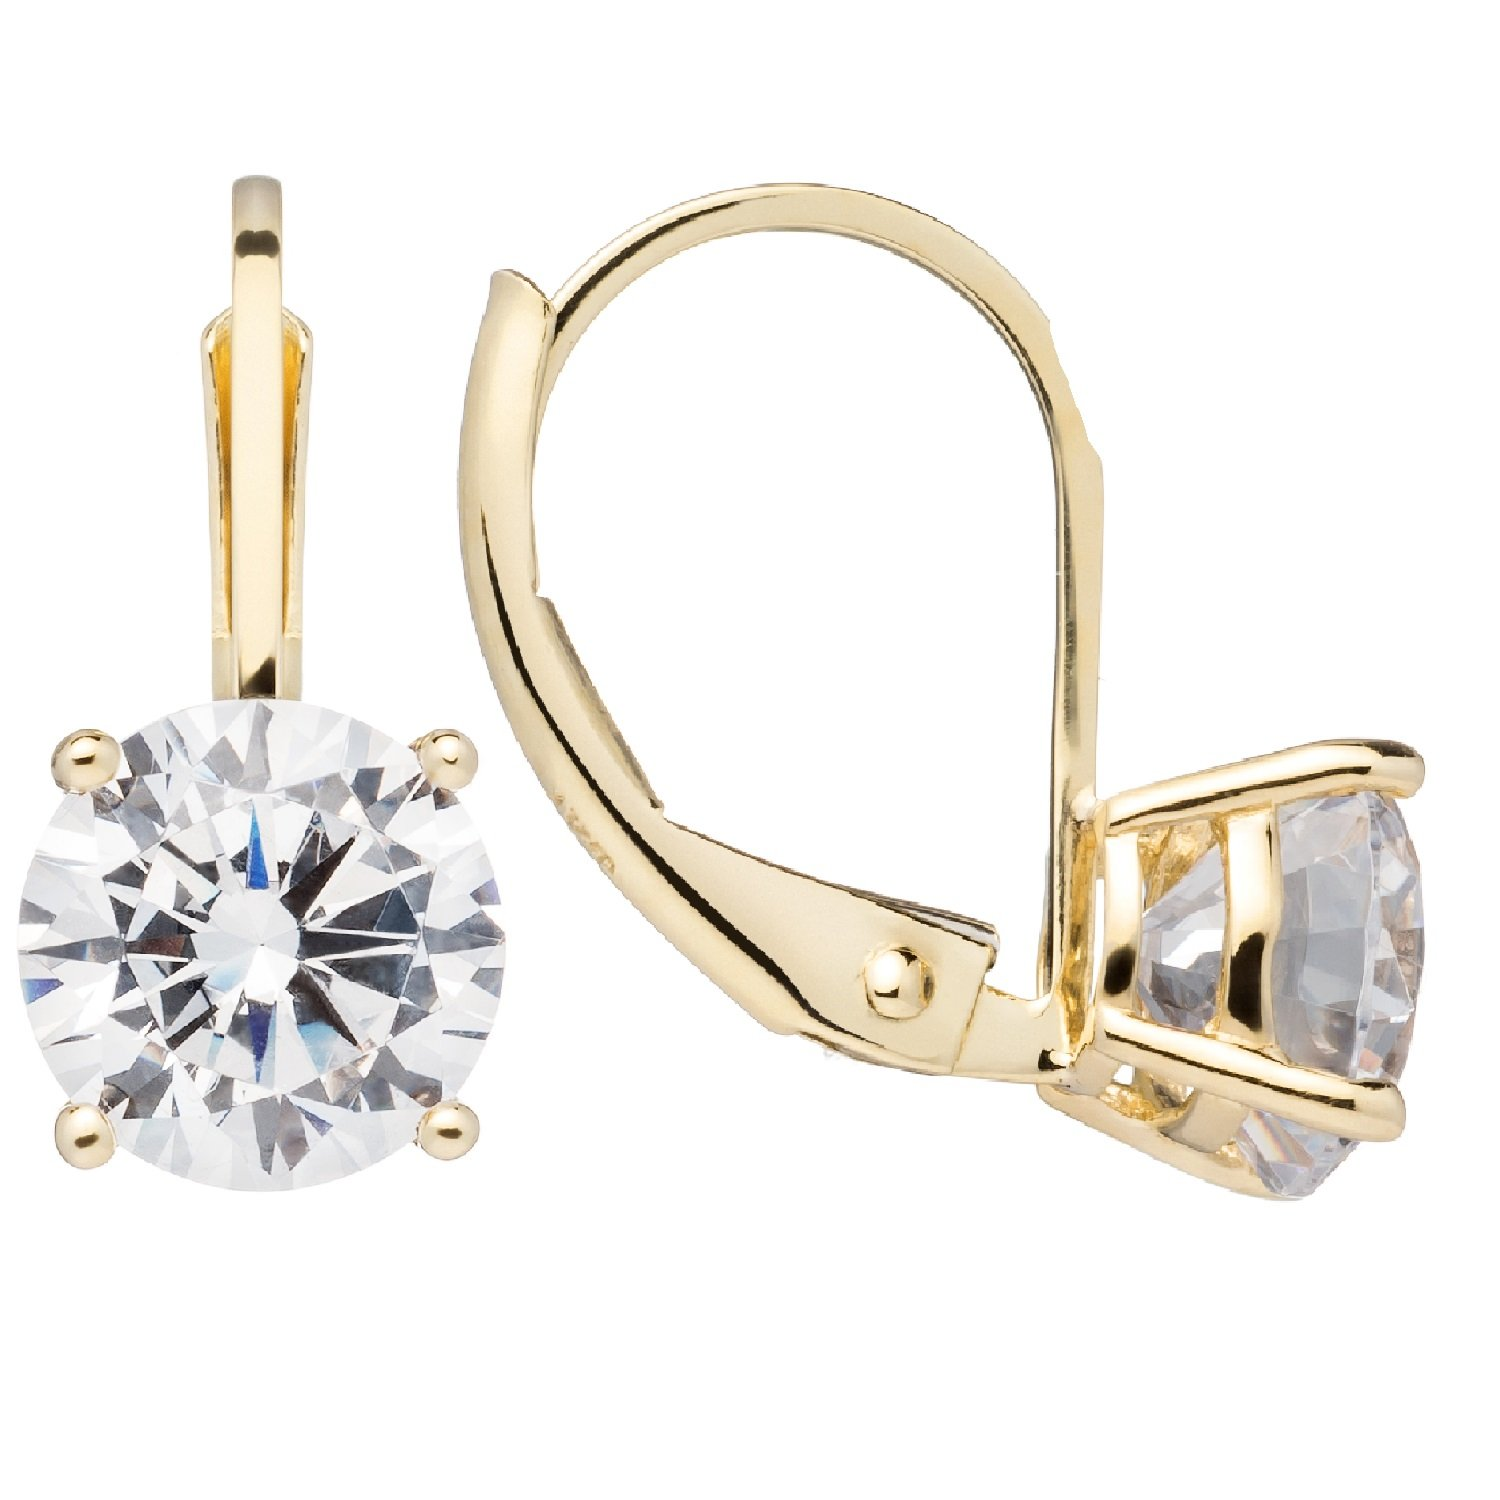 Everyday Elegance | 14K Solid Yellow Gold Earrings | Round Cut Cubic Zirconia | Leverback Drop Dangle Basket Setting | 1.8 ctw | With Gift Box